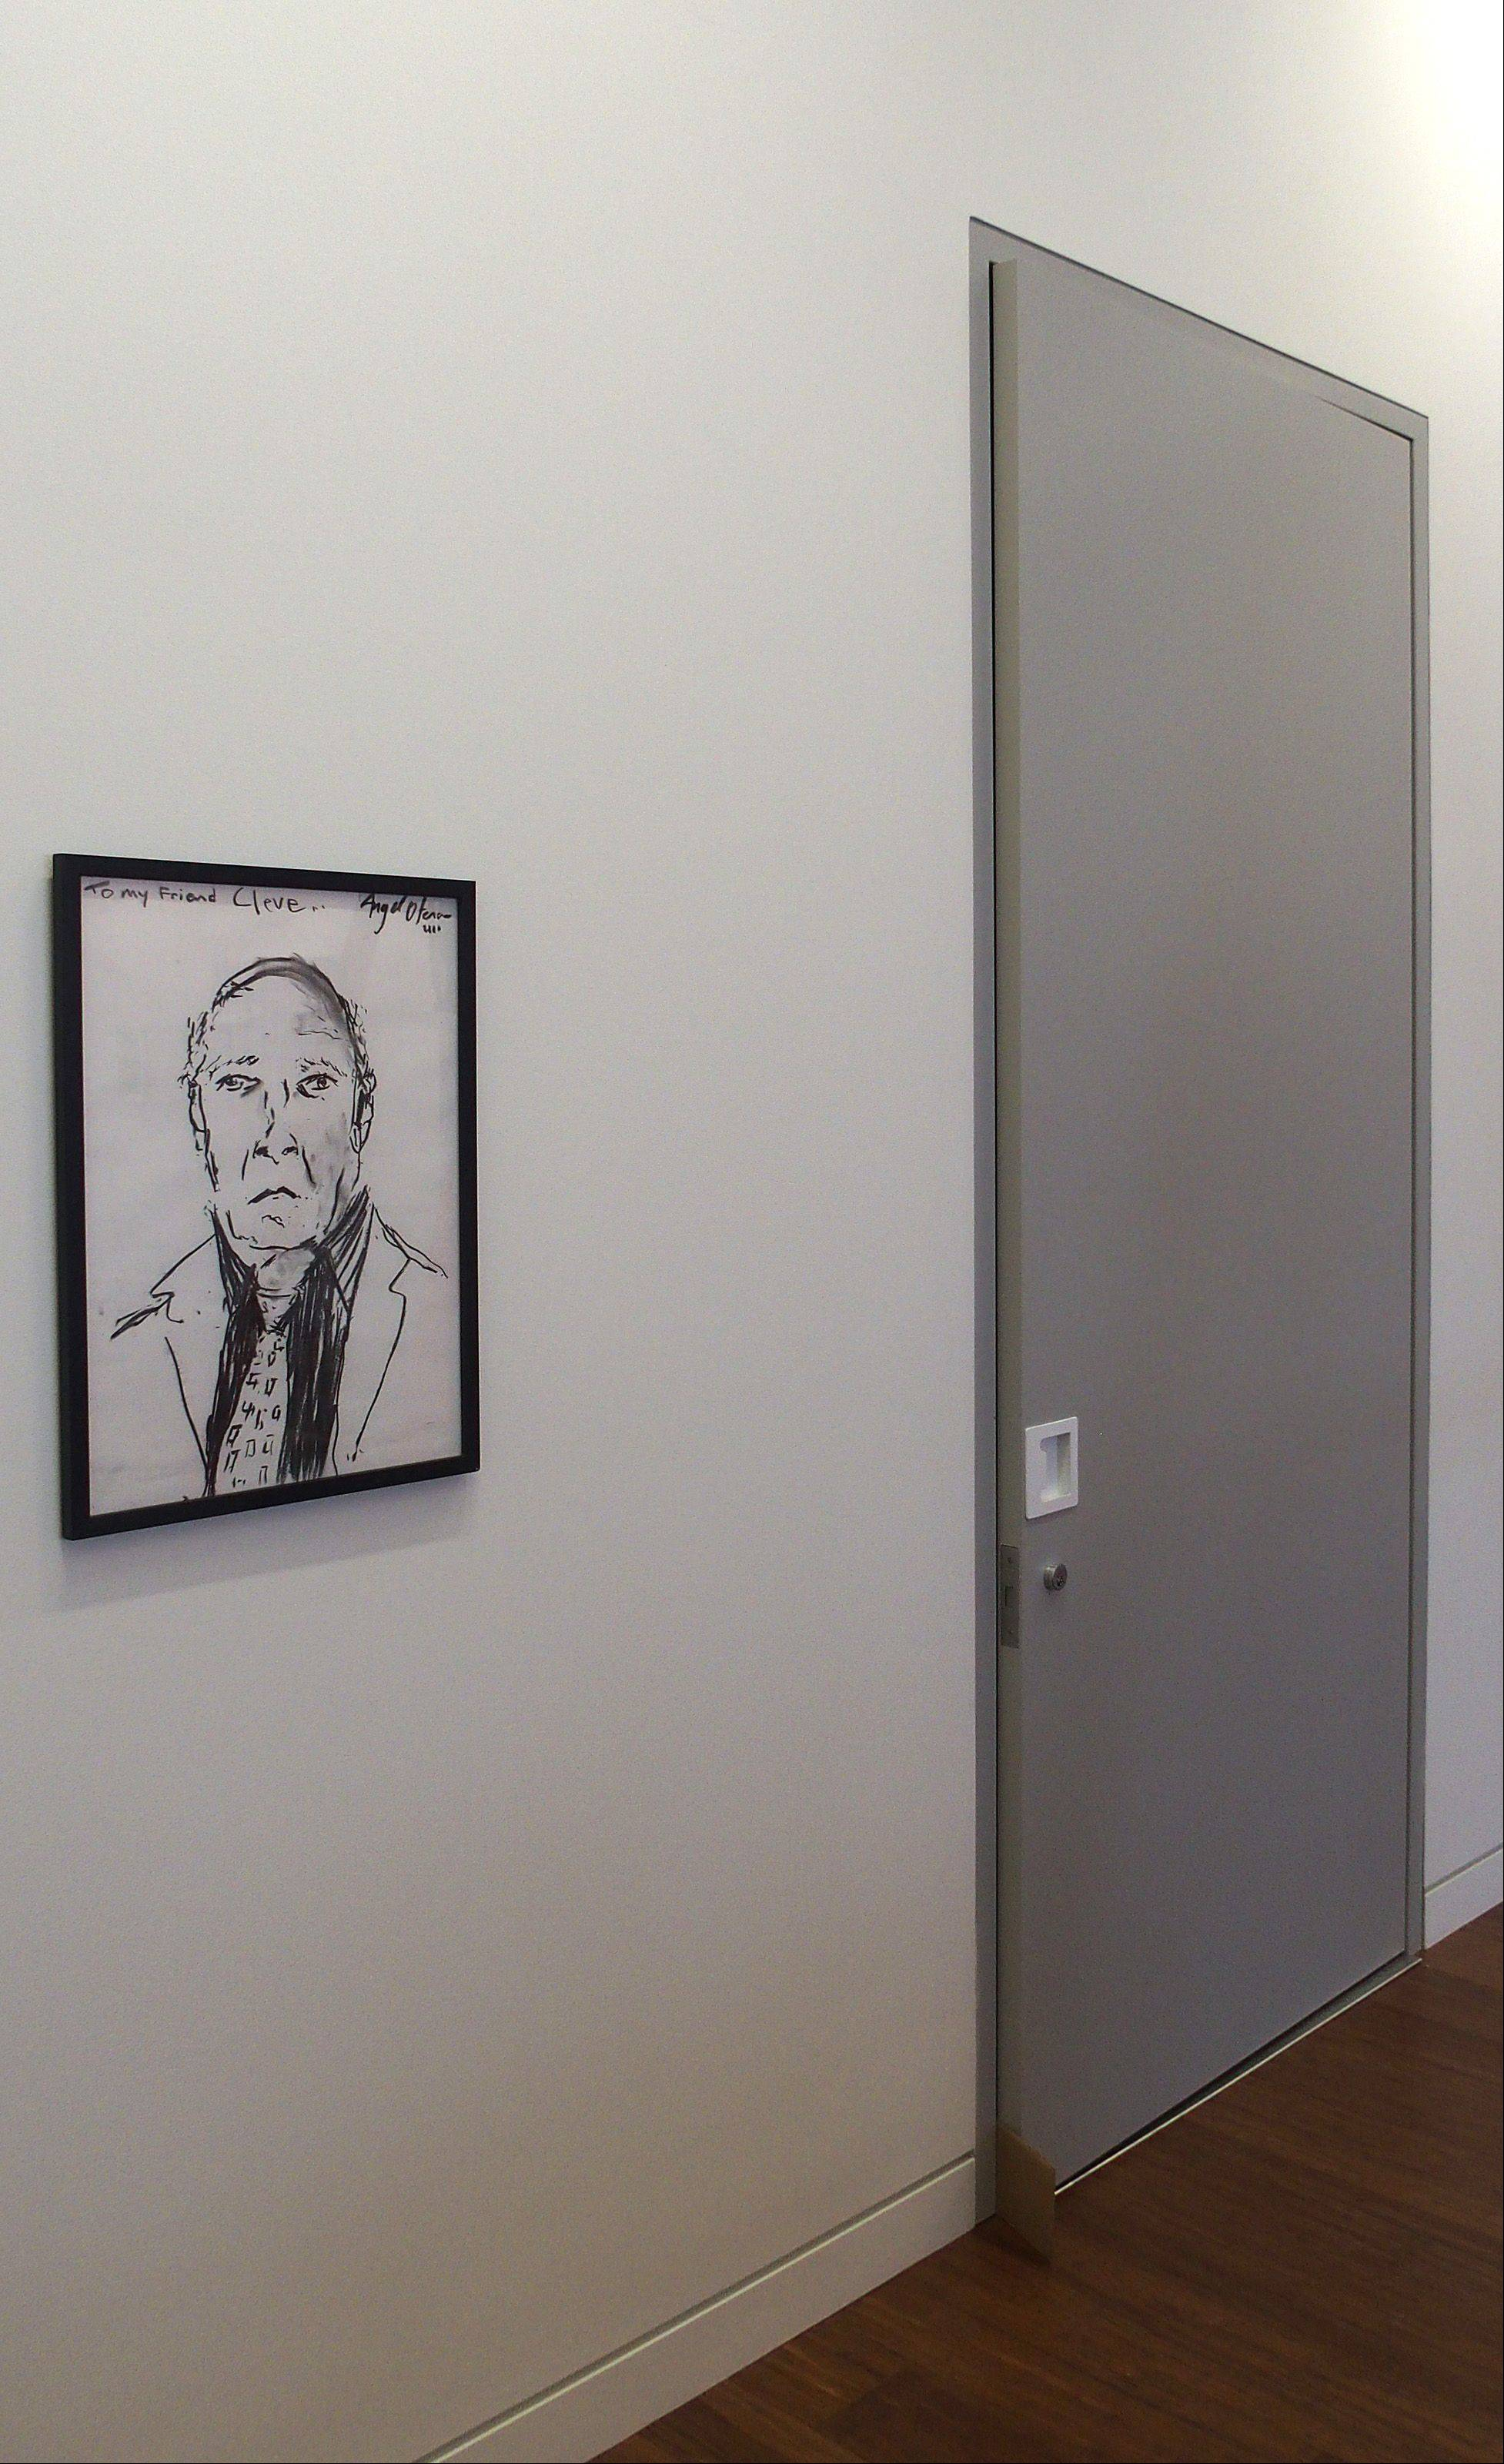 A charcoal drawing of Cleve Carney by Angel Otero is part of the exhibit on display at the new art gallery that bears Carney's name.